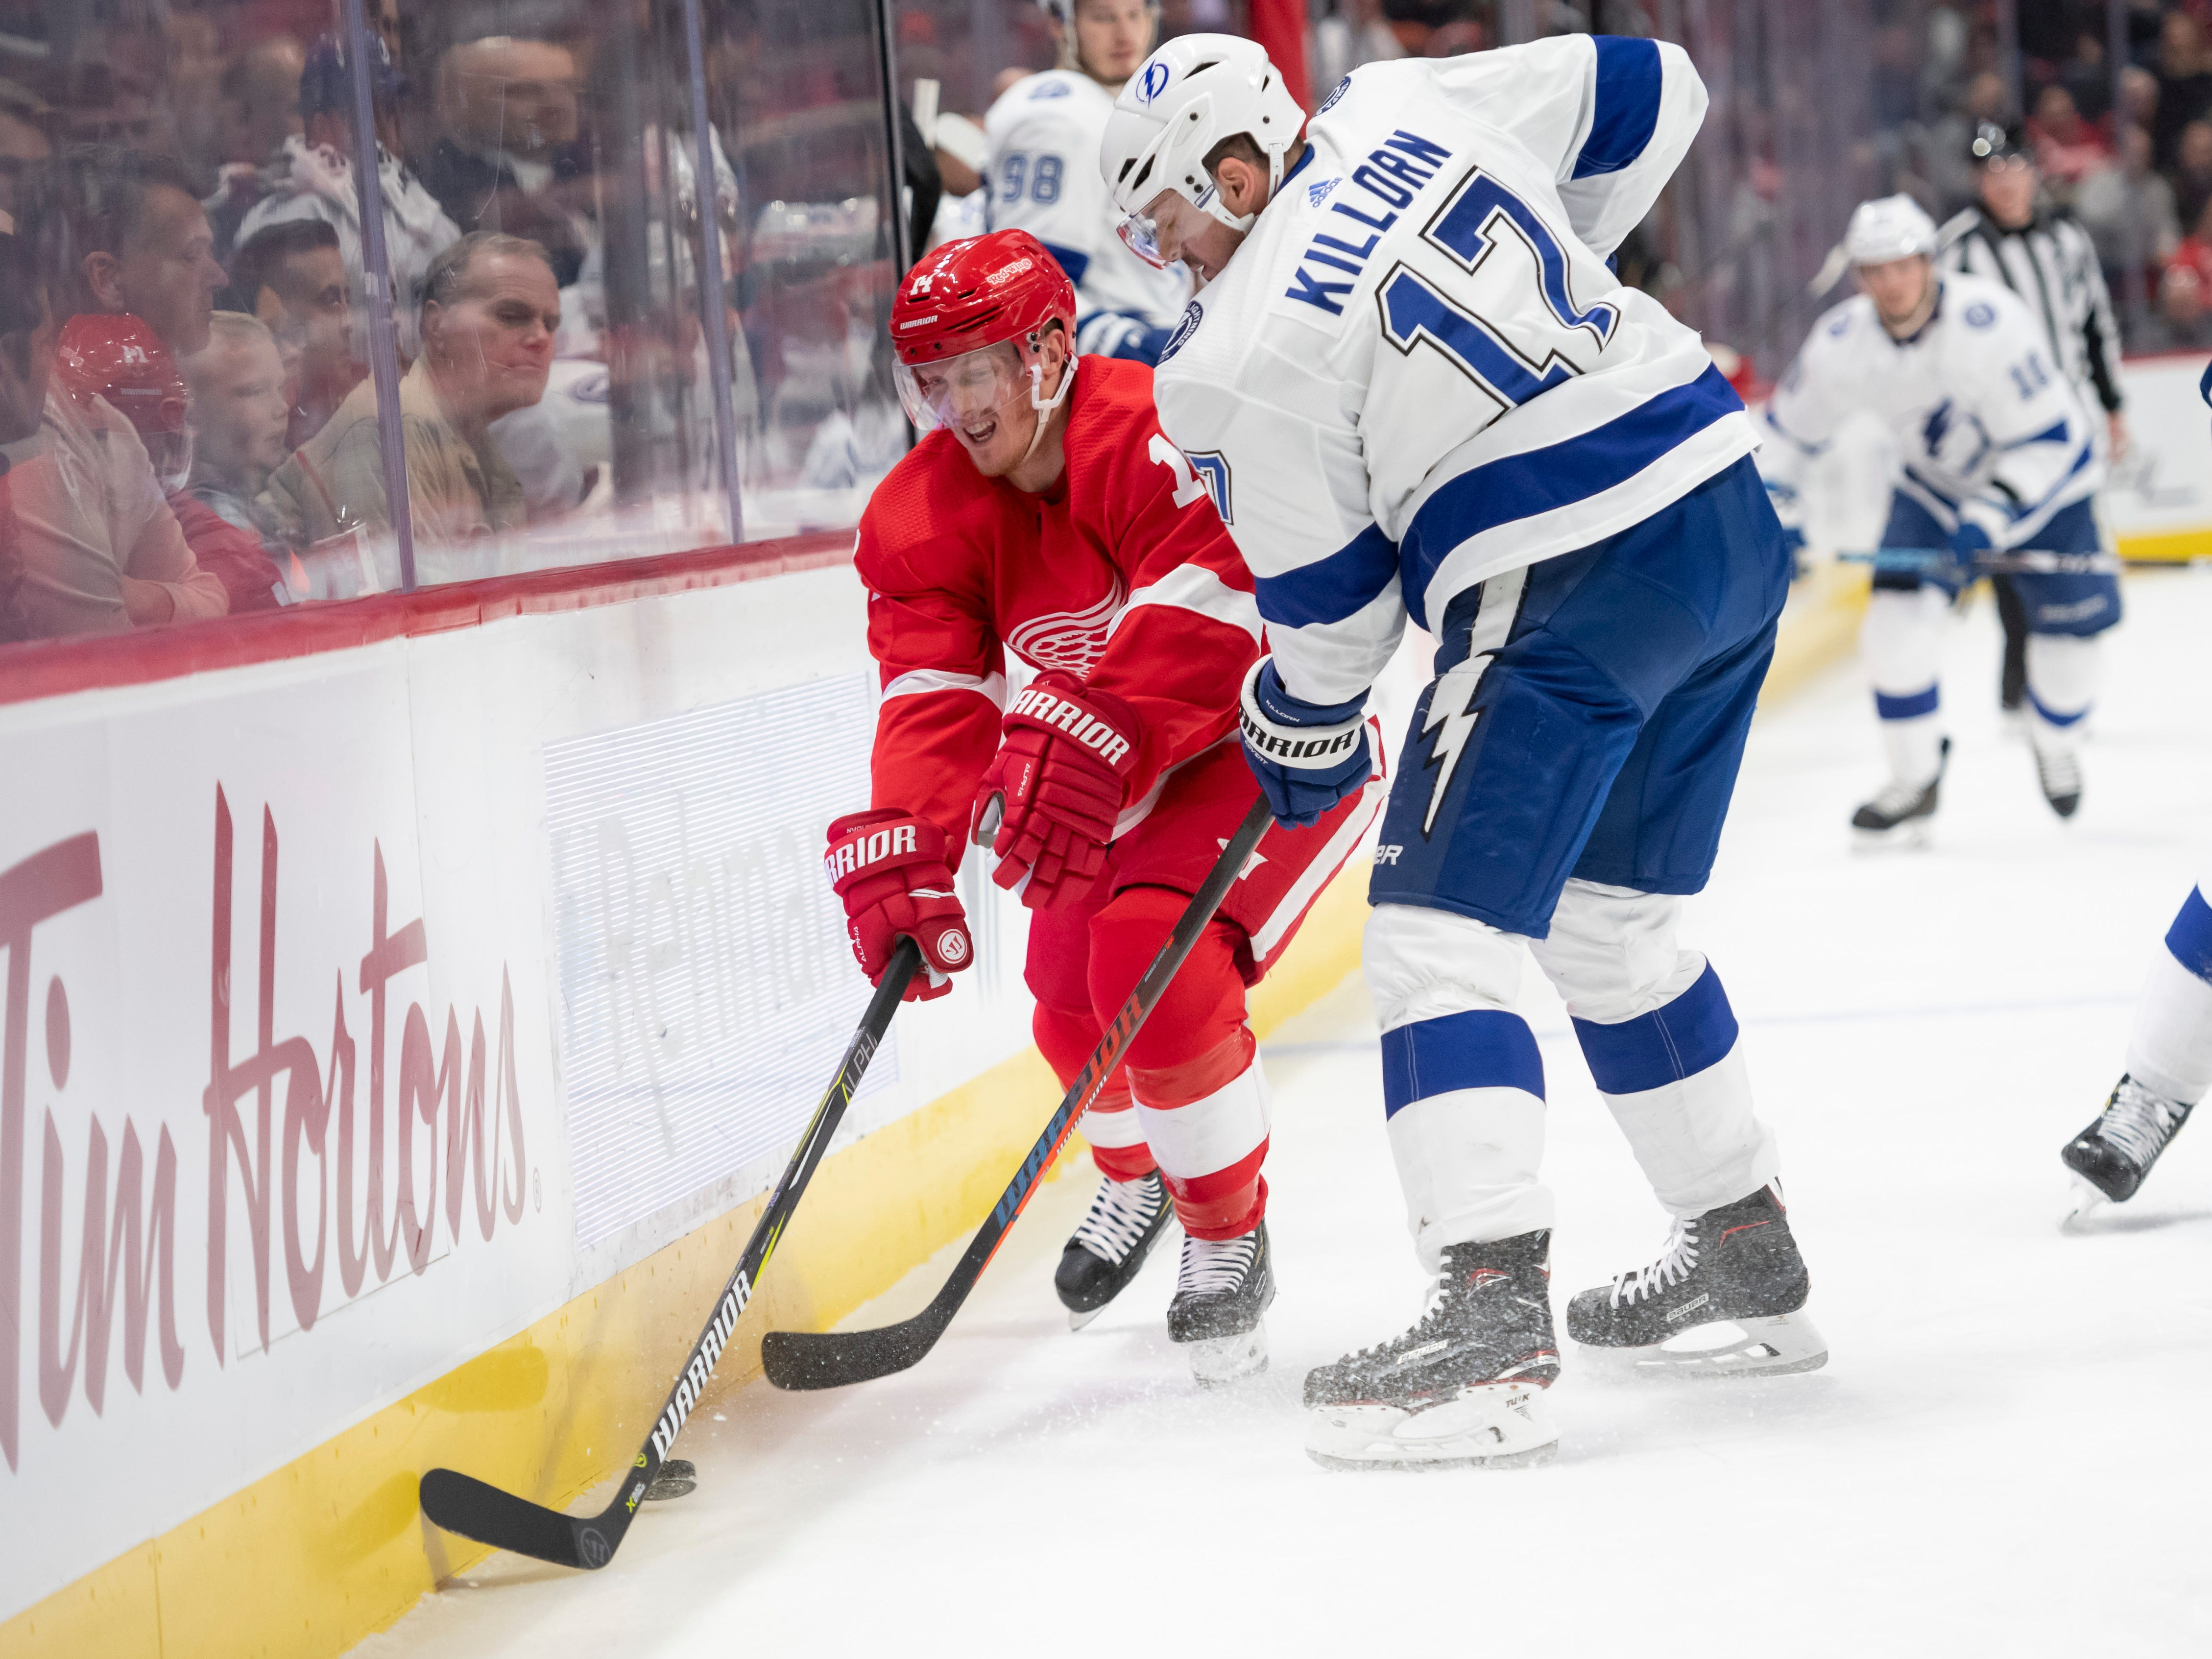 Detroit center Gustav Nyquist battles for the puck with Tampa Bay center Alex Killorn in the first period.